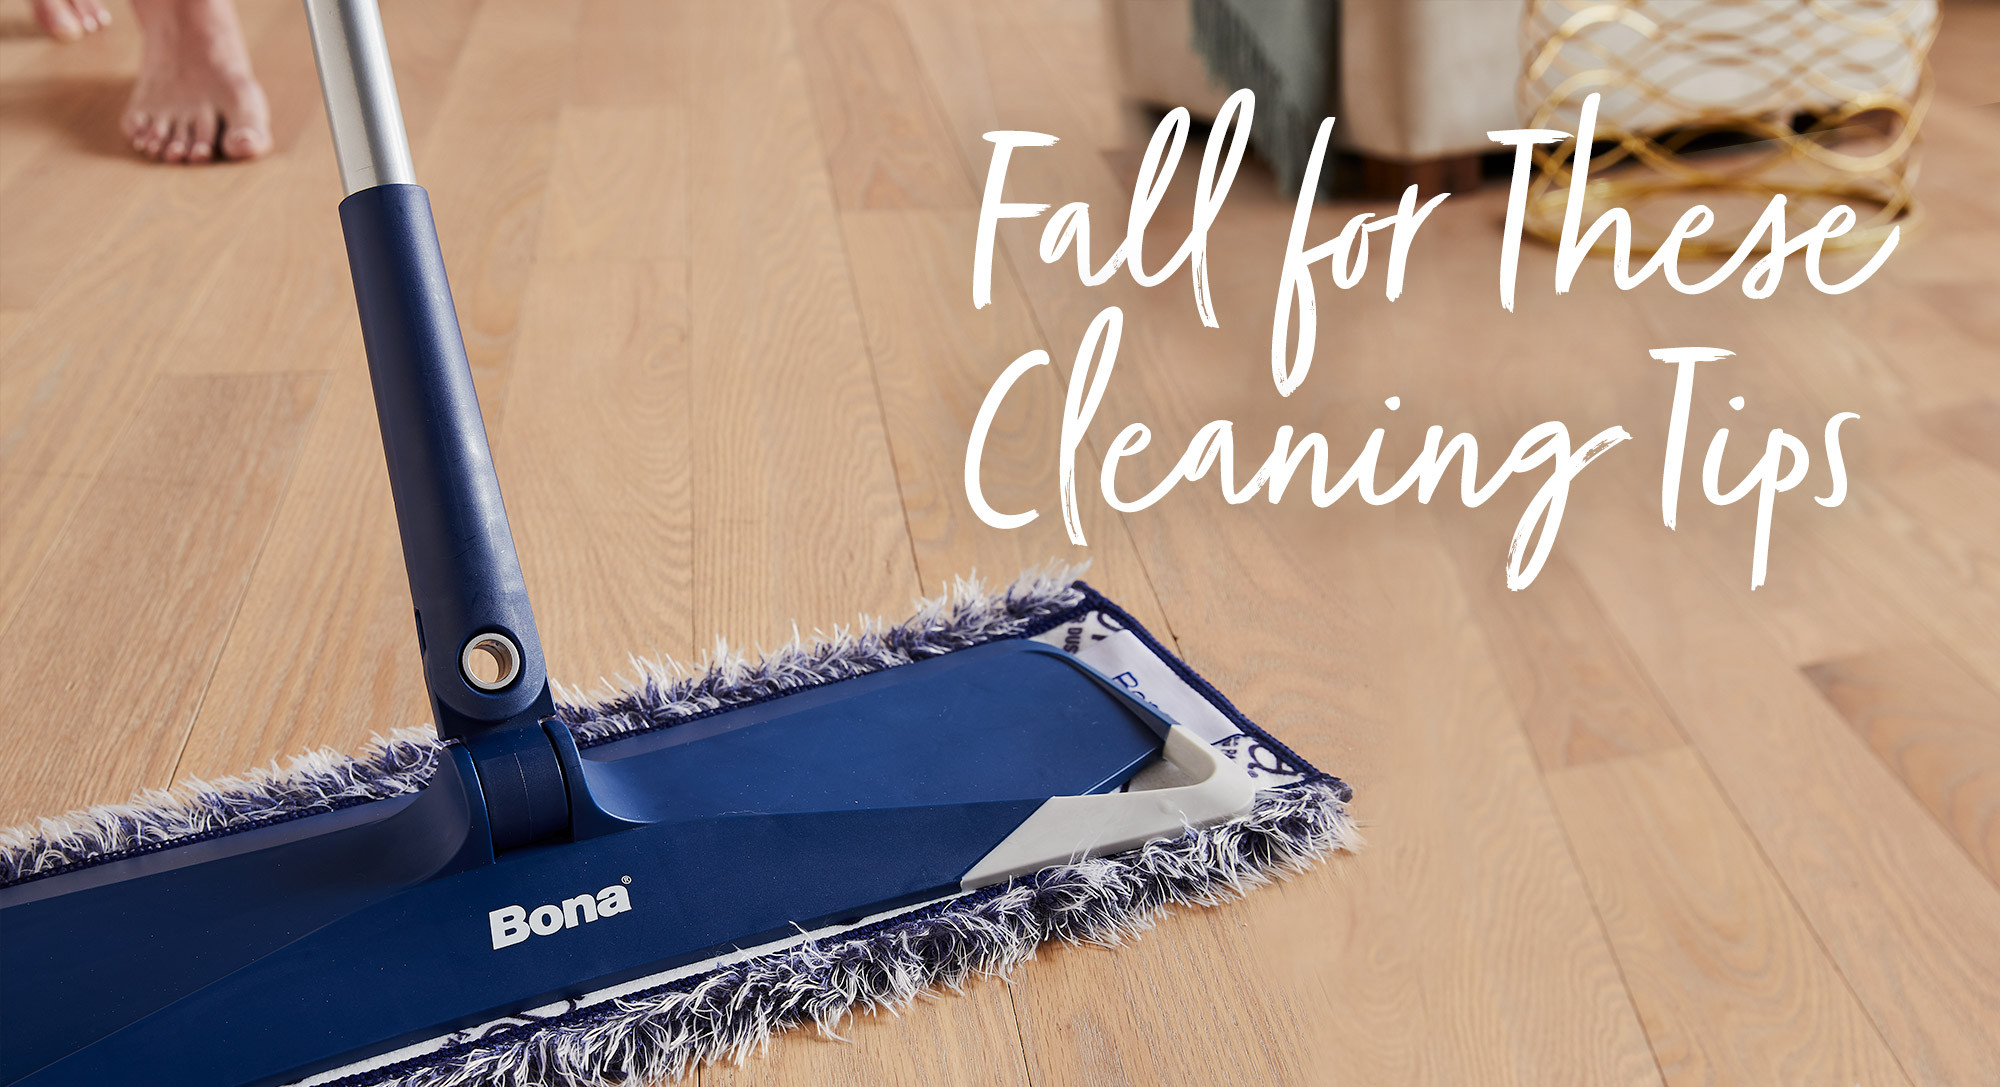 restoring hardwood floors yourself of home bona us with fall feature2